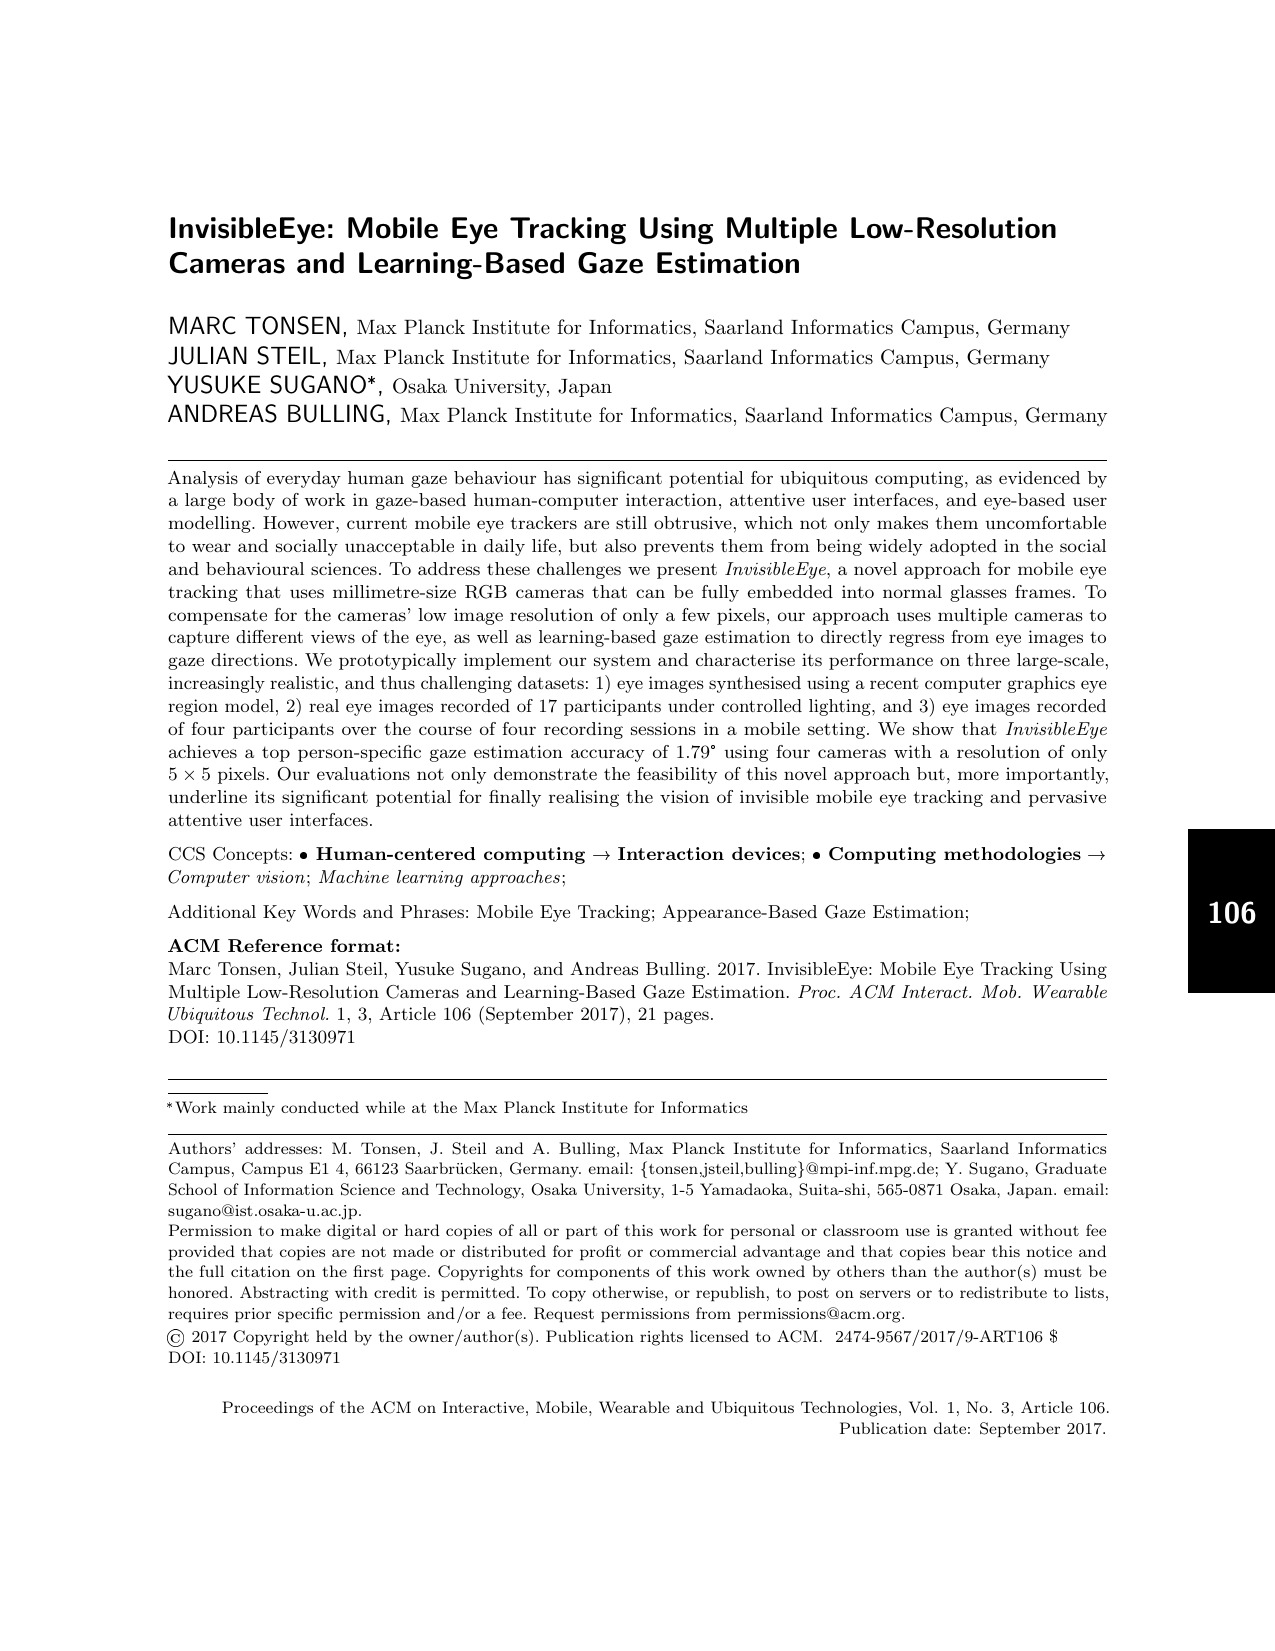 InvisibleEye: Mobile Eye Tracking Using Multiple Low-Resolution Cameras and Learning-Based Gaze Estimation